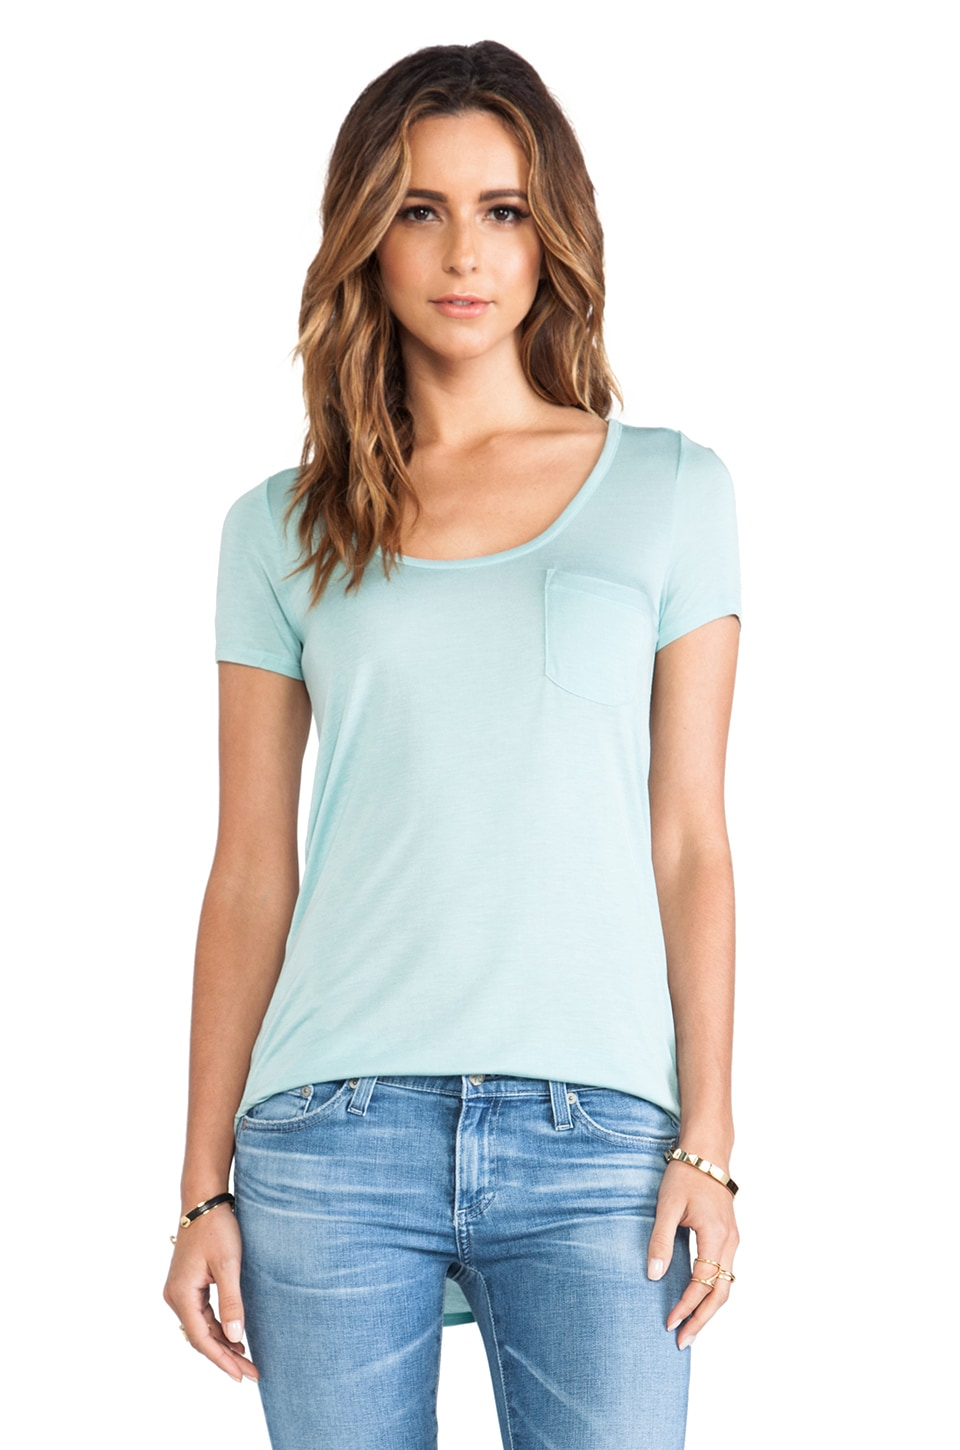 AG Adriano Goldschmied Wren Pocket Tee in Seascape Blue